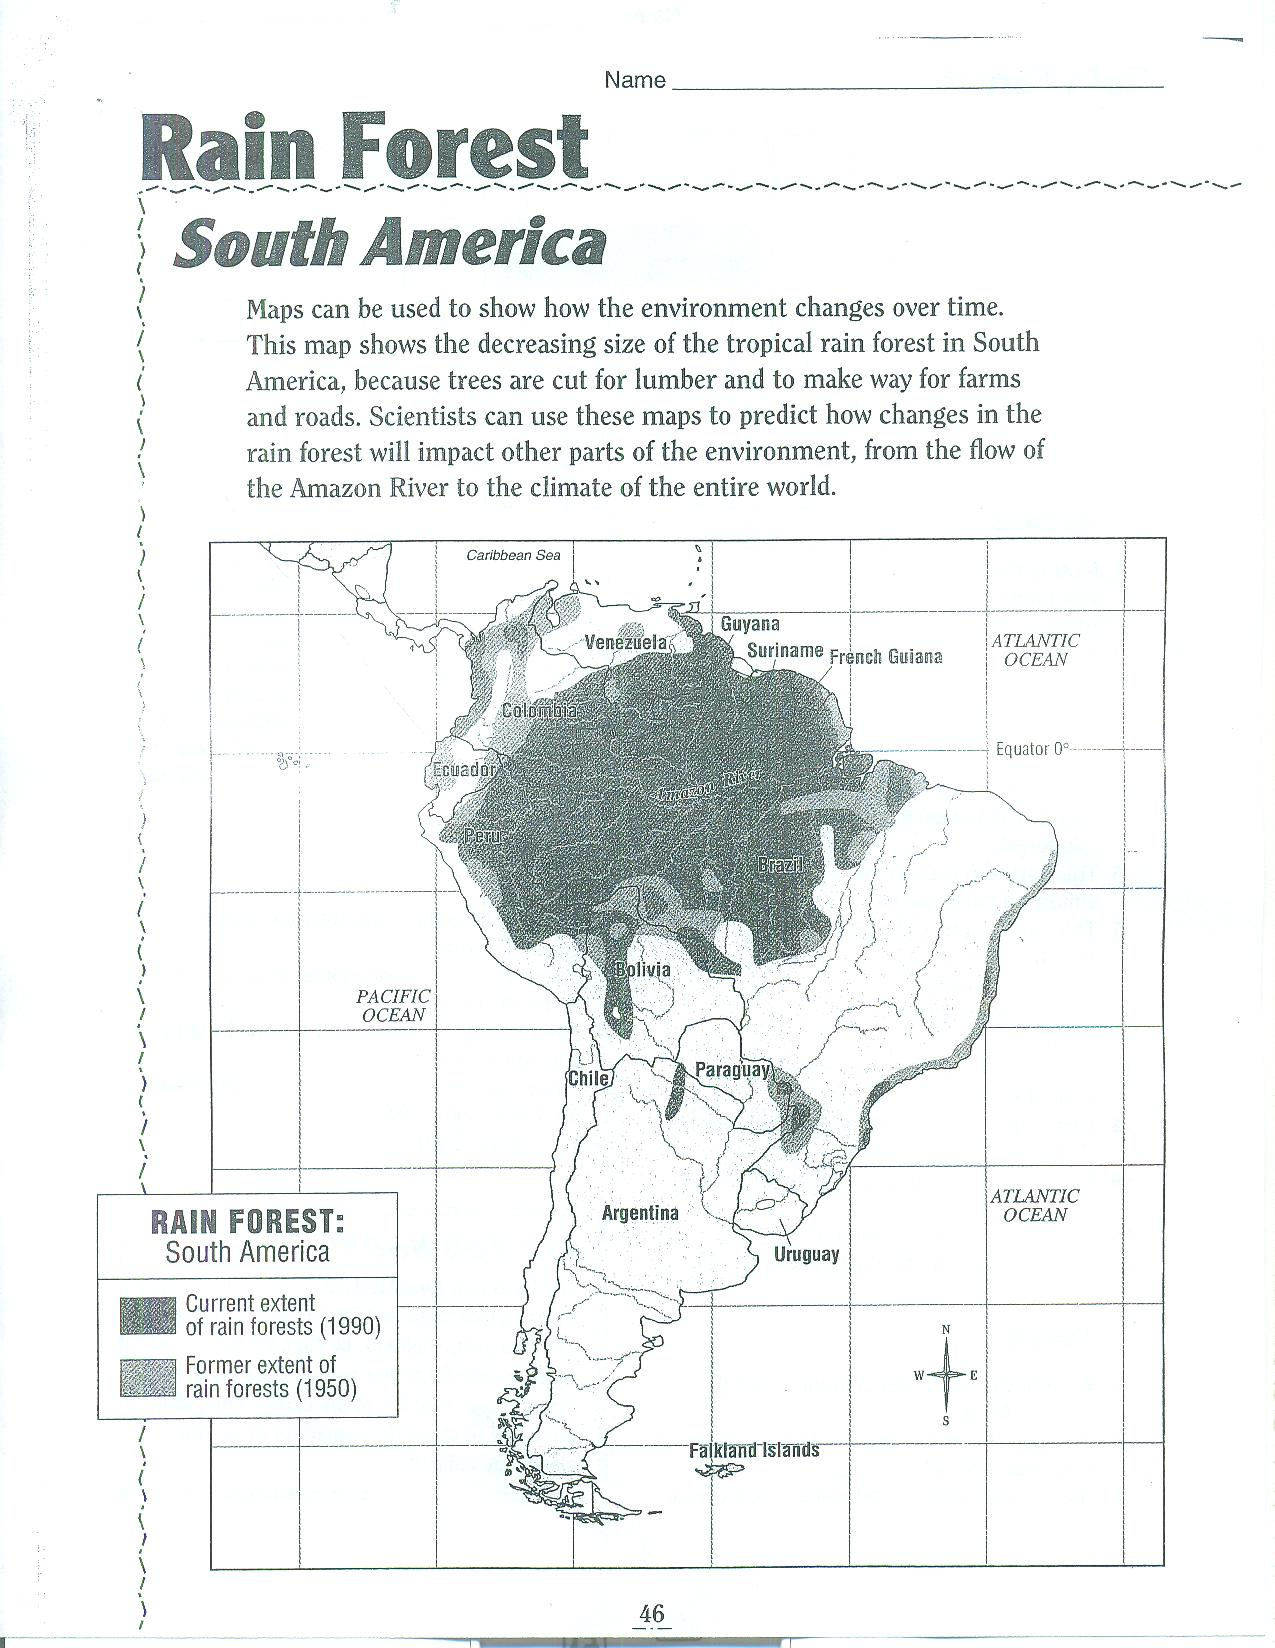 worksheet Rainforest Layers Worksheet rainforest layers worksheet abitlikethis of the amazon packet page 3 and 4